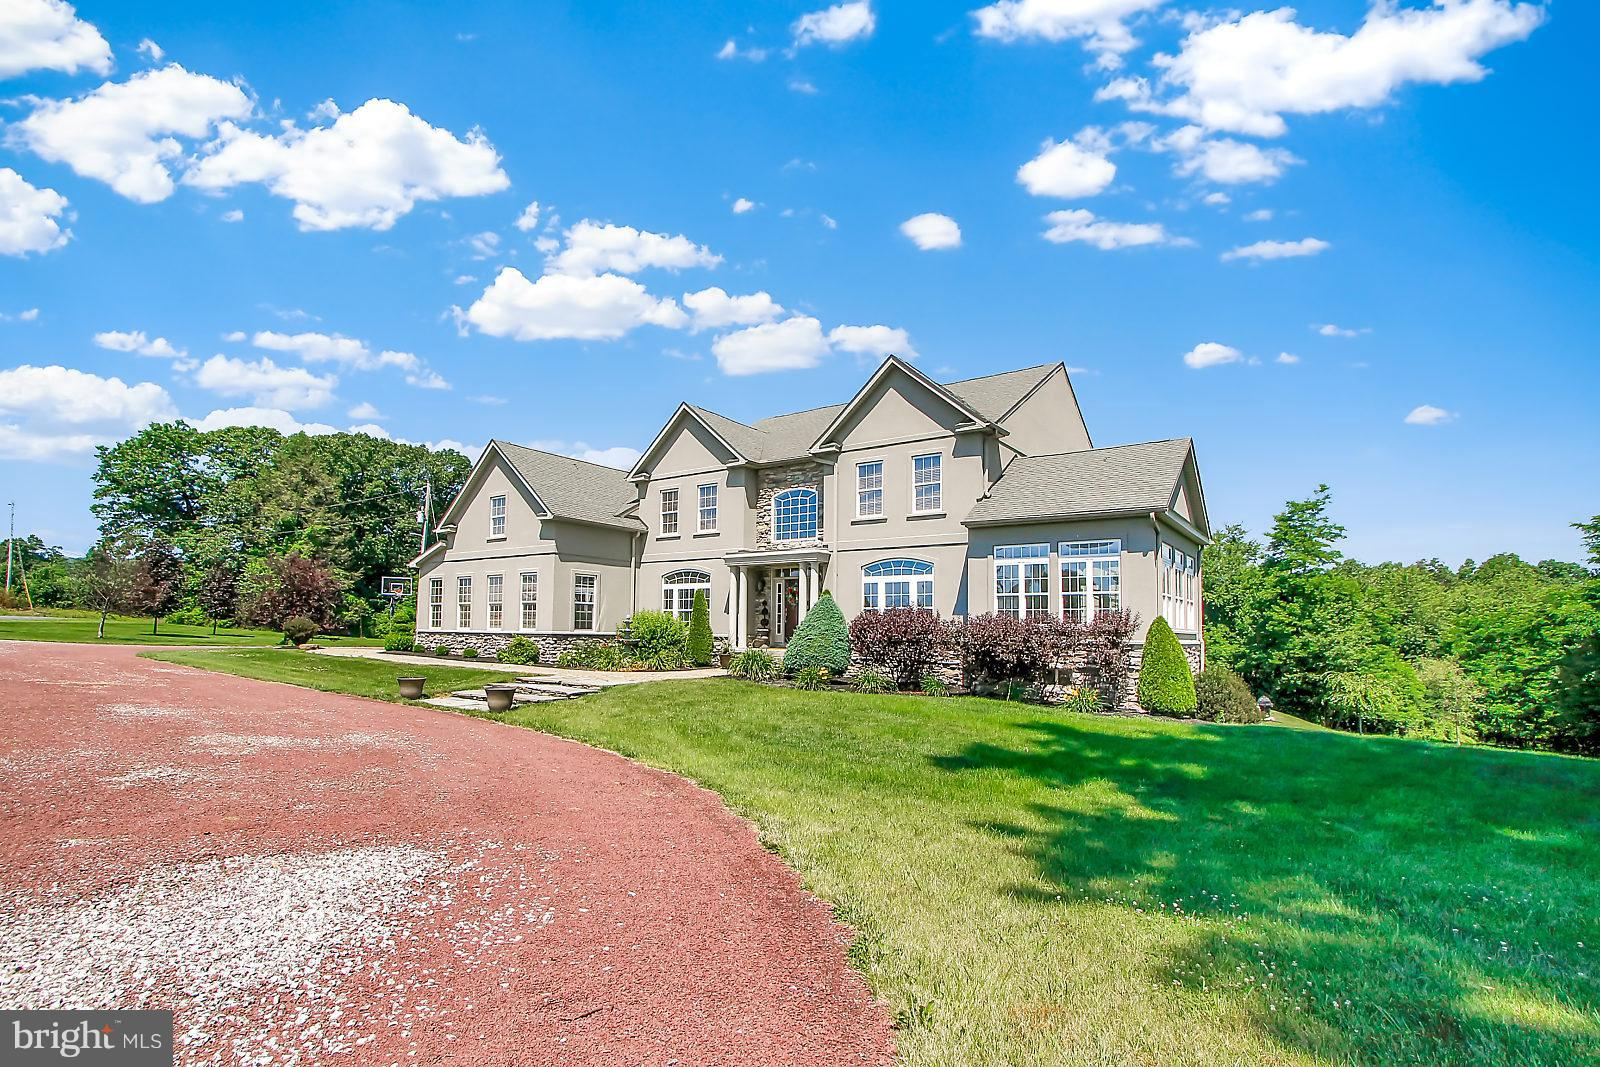 2175 COLD SPRINGS ROAD, ORRTANNA, PA 17353